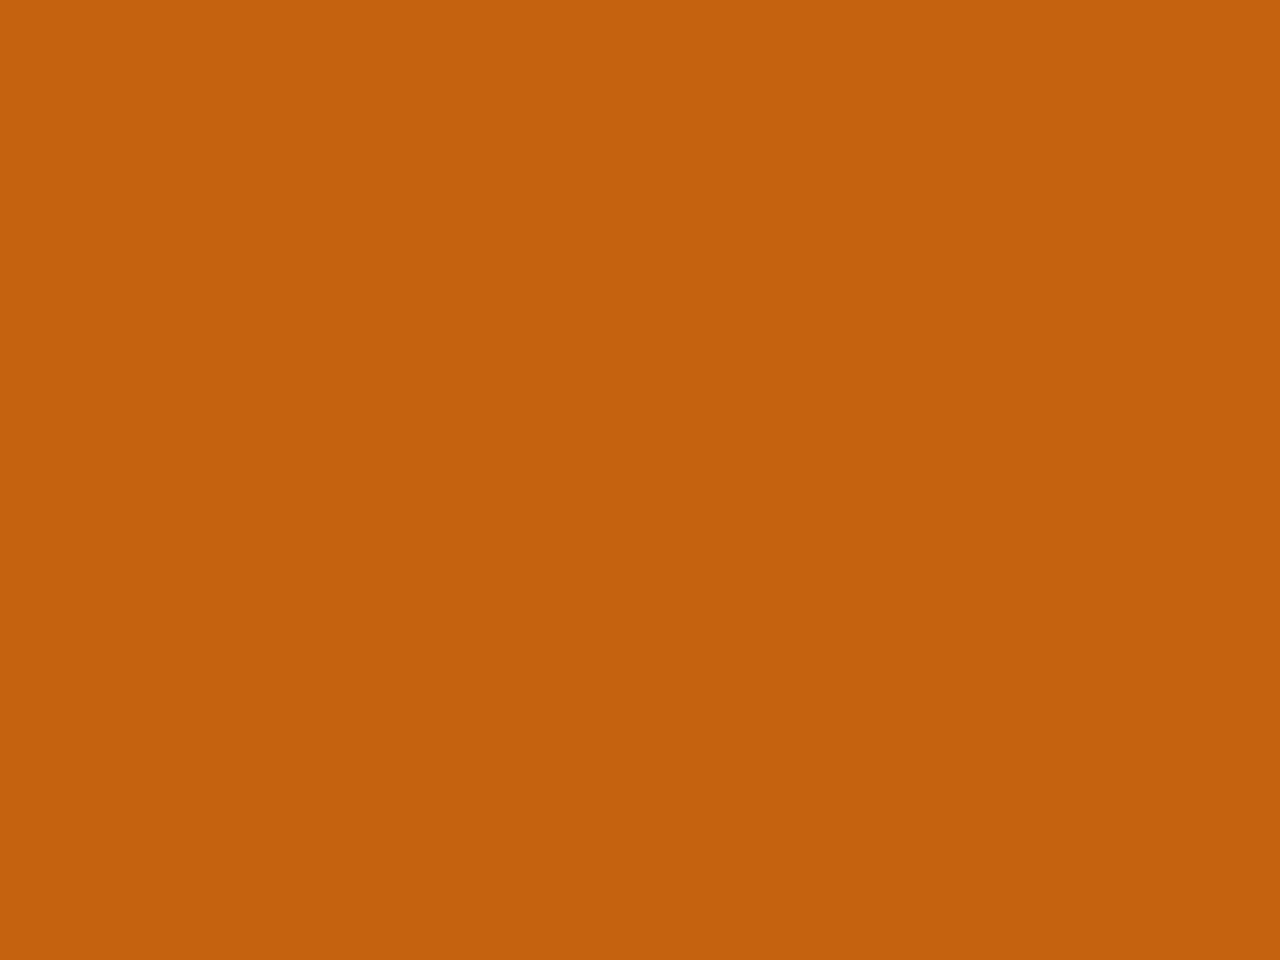 1280x960 Alloy Orange Solid Color Background